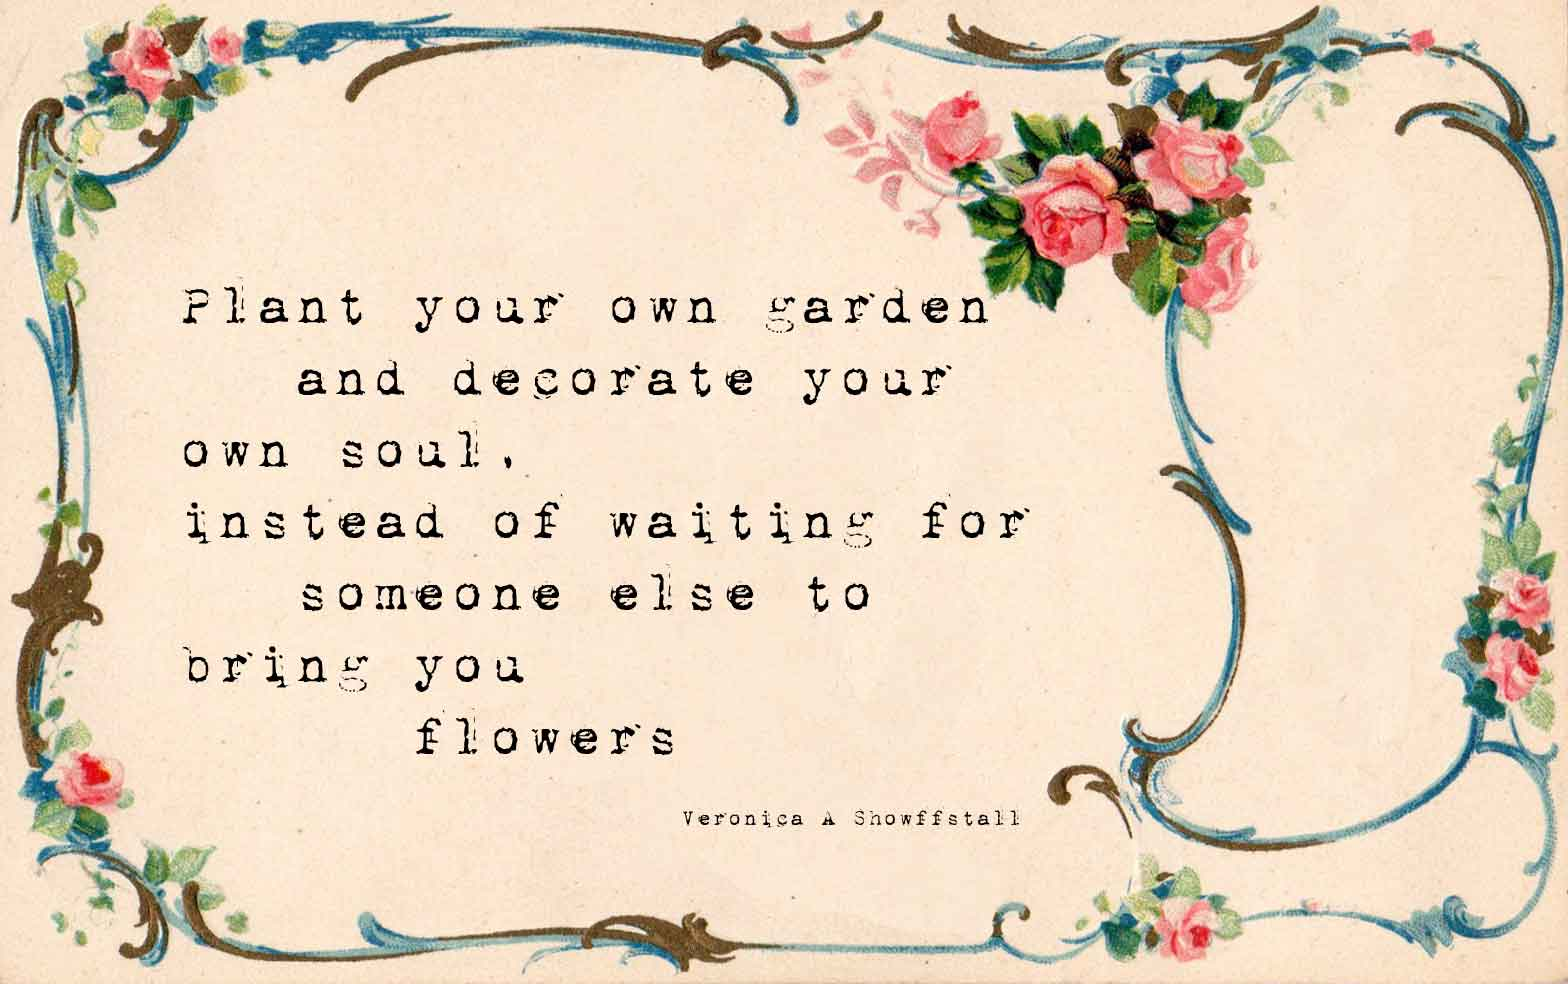 Decorate your garden enhance your soul inspirational quote for Garden design quotations